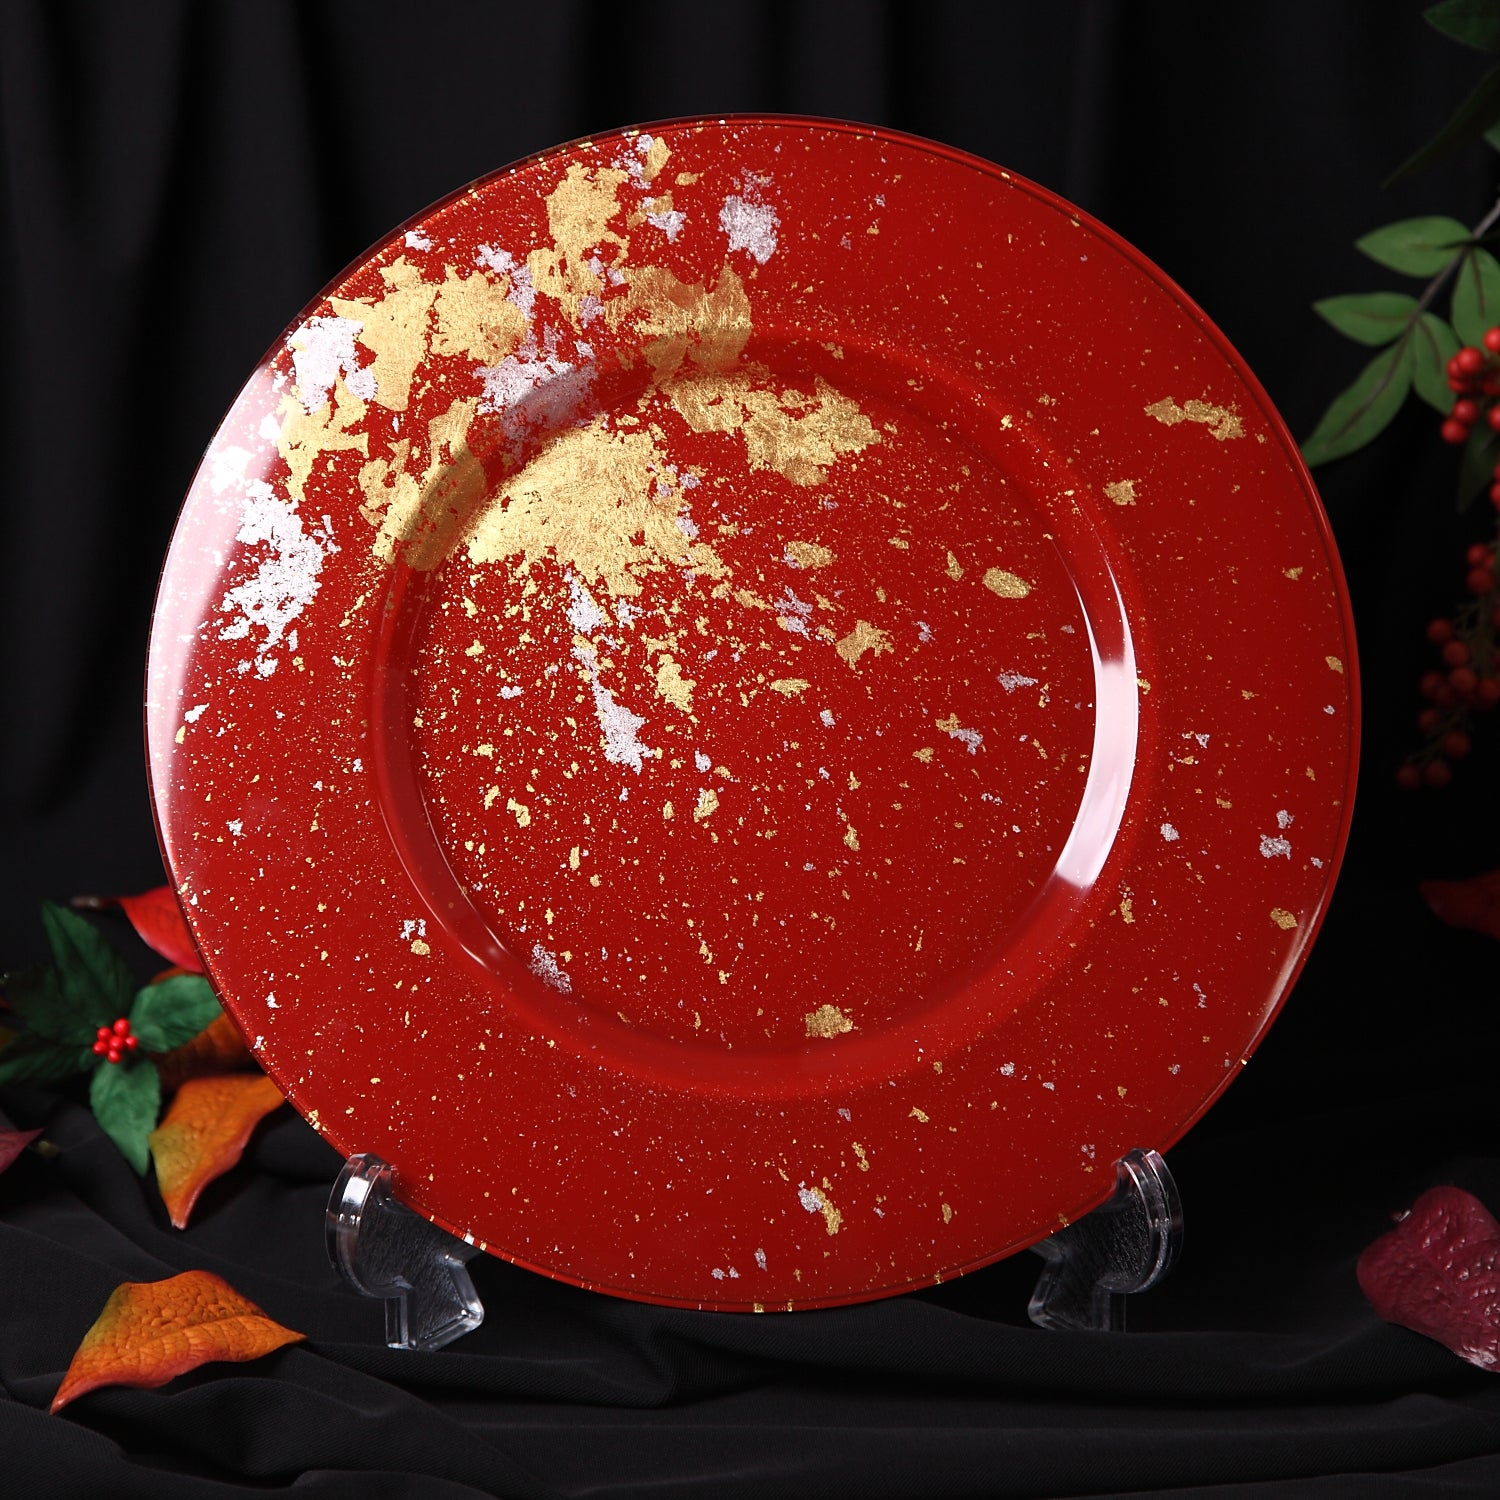 Syosaku Japanese Urushi Glass Charger Plate 13.9-inch (35cm) Vermilion with Gold Leaf, Dishwasher Safe